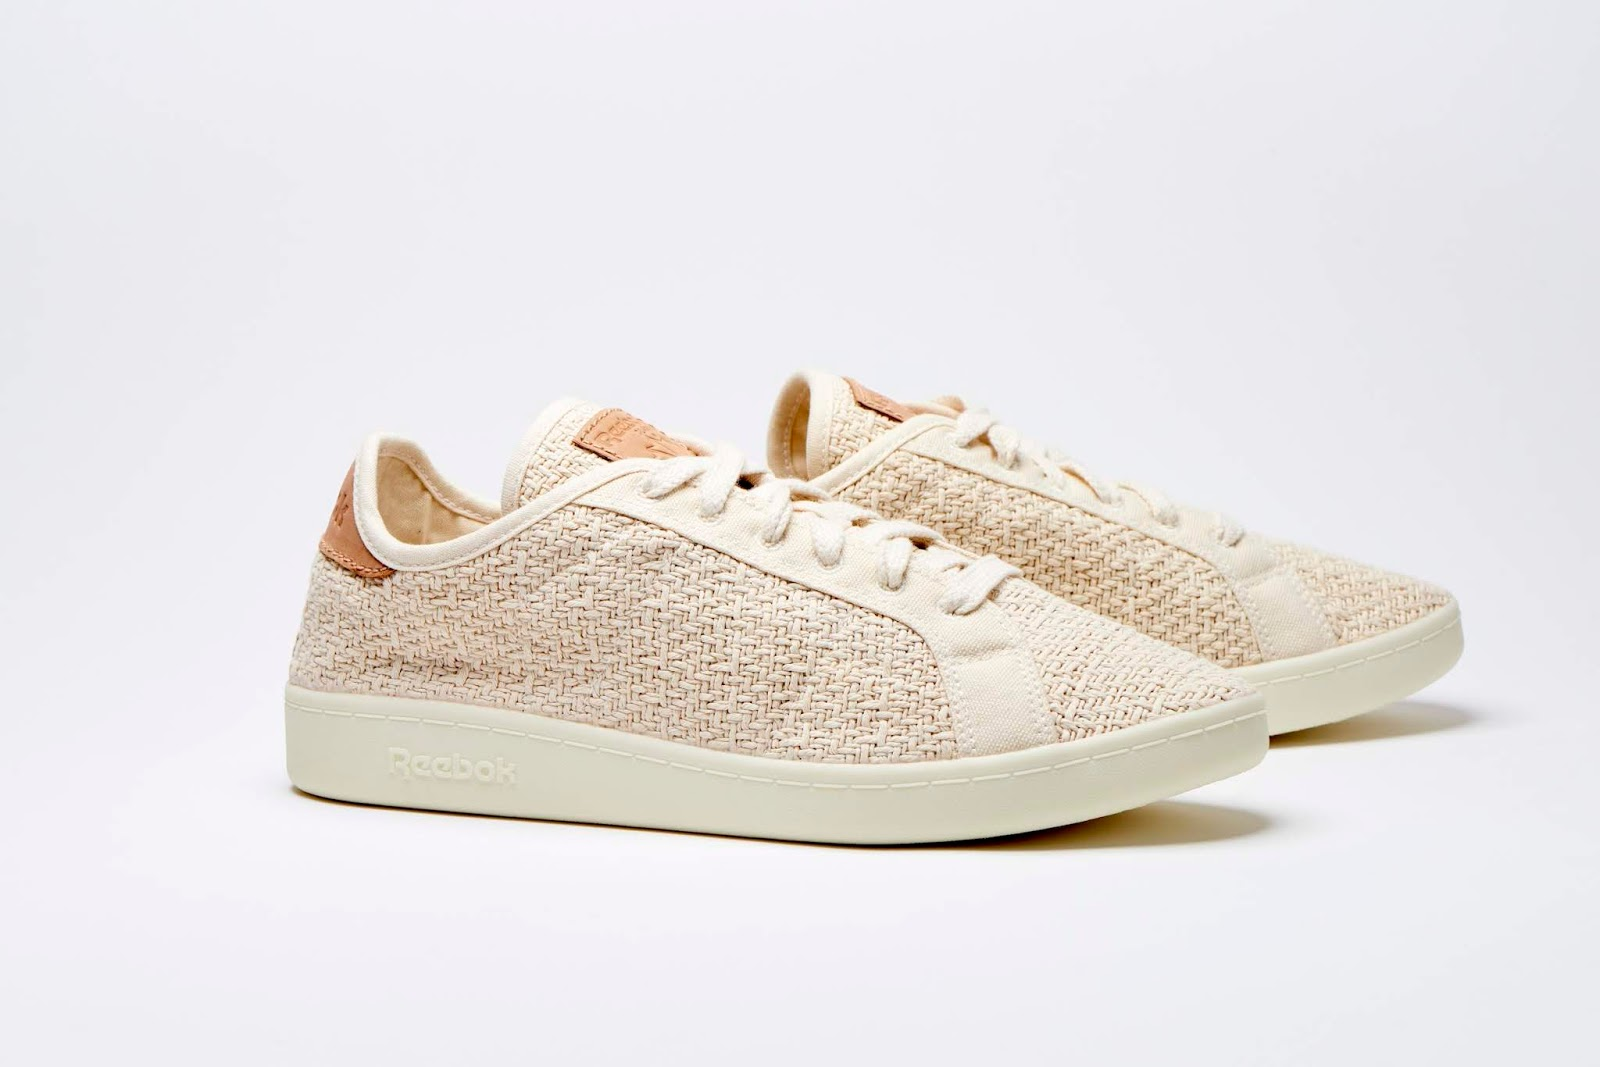 Modelo Beige de zapatillas Reebok Cotton Corn